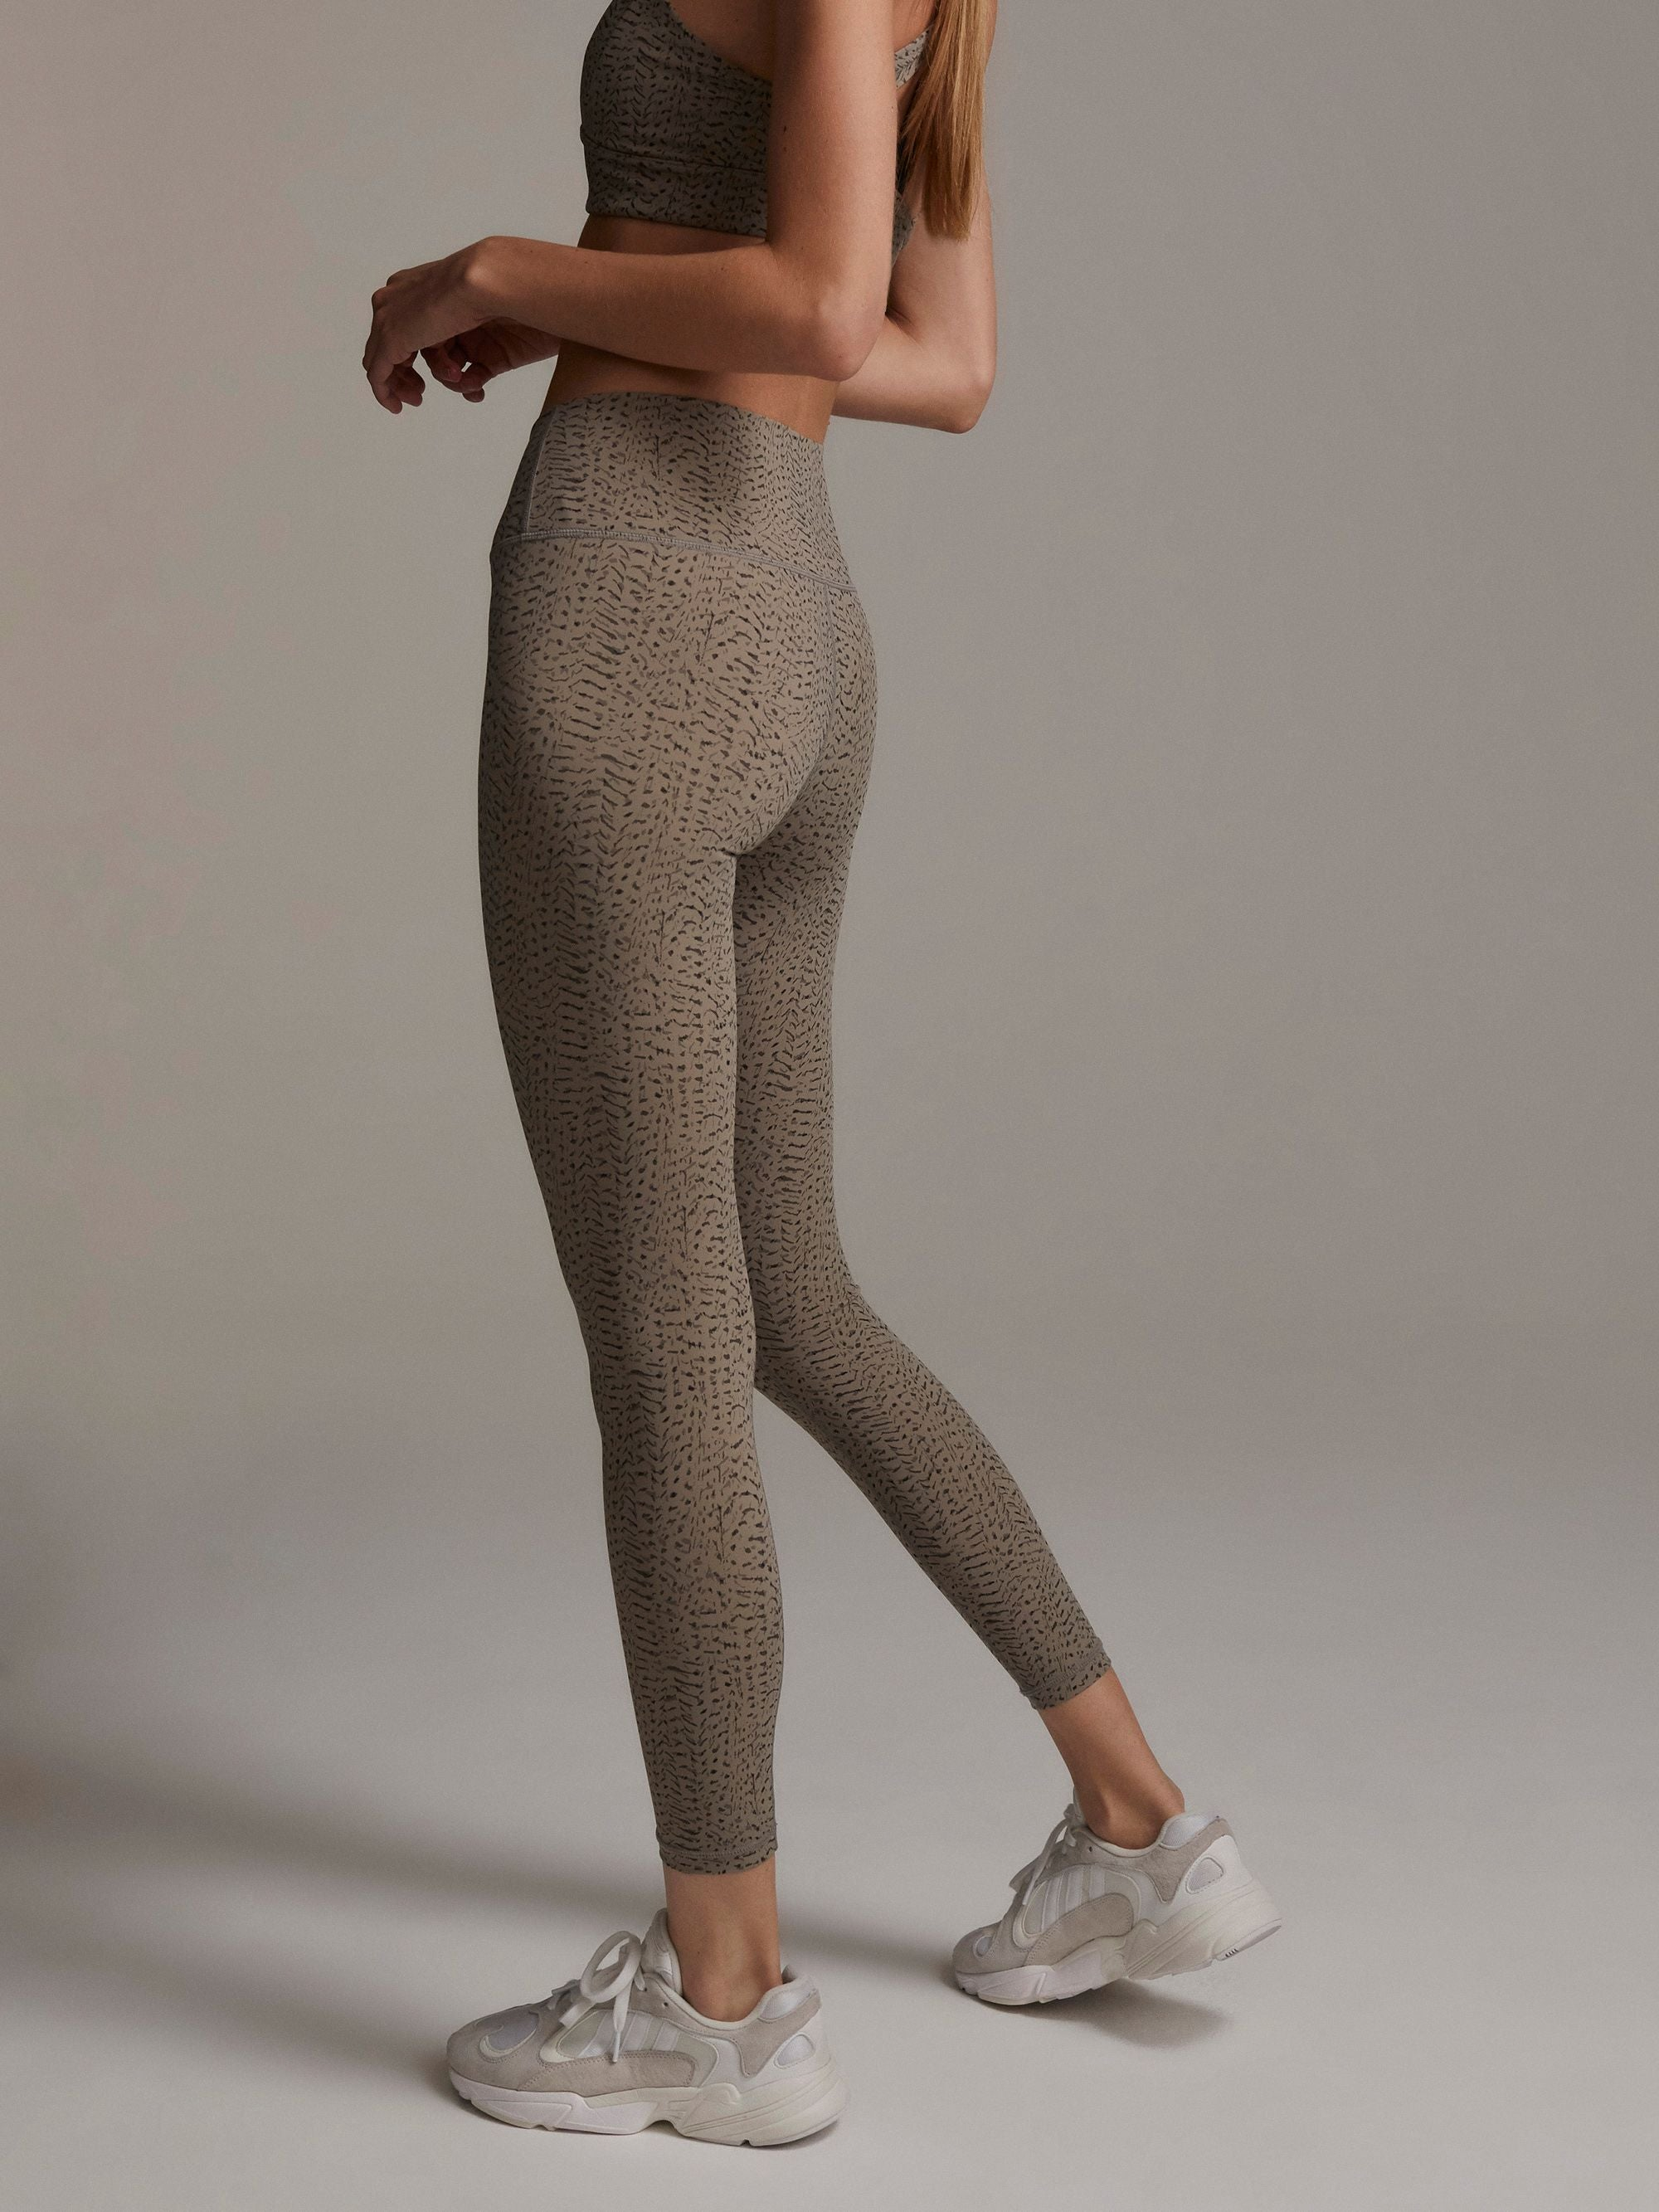 Luna Legging In Taupe Feather